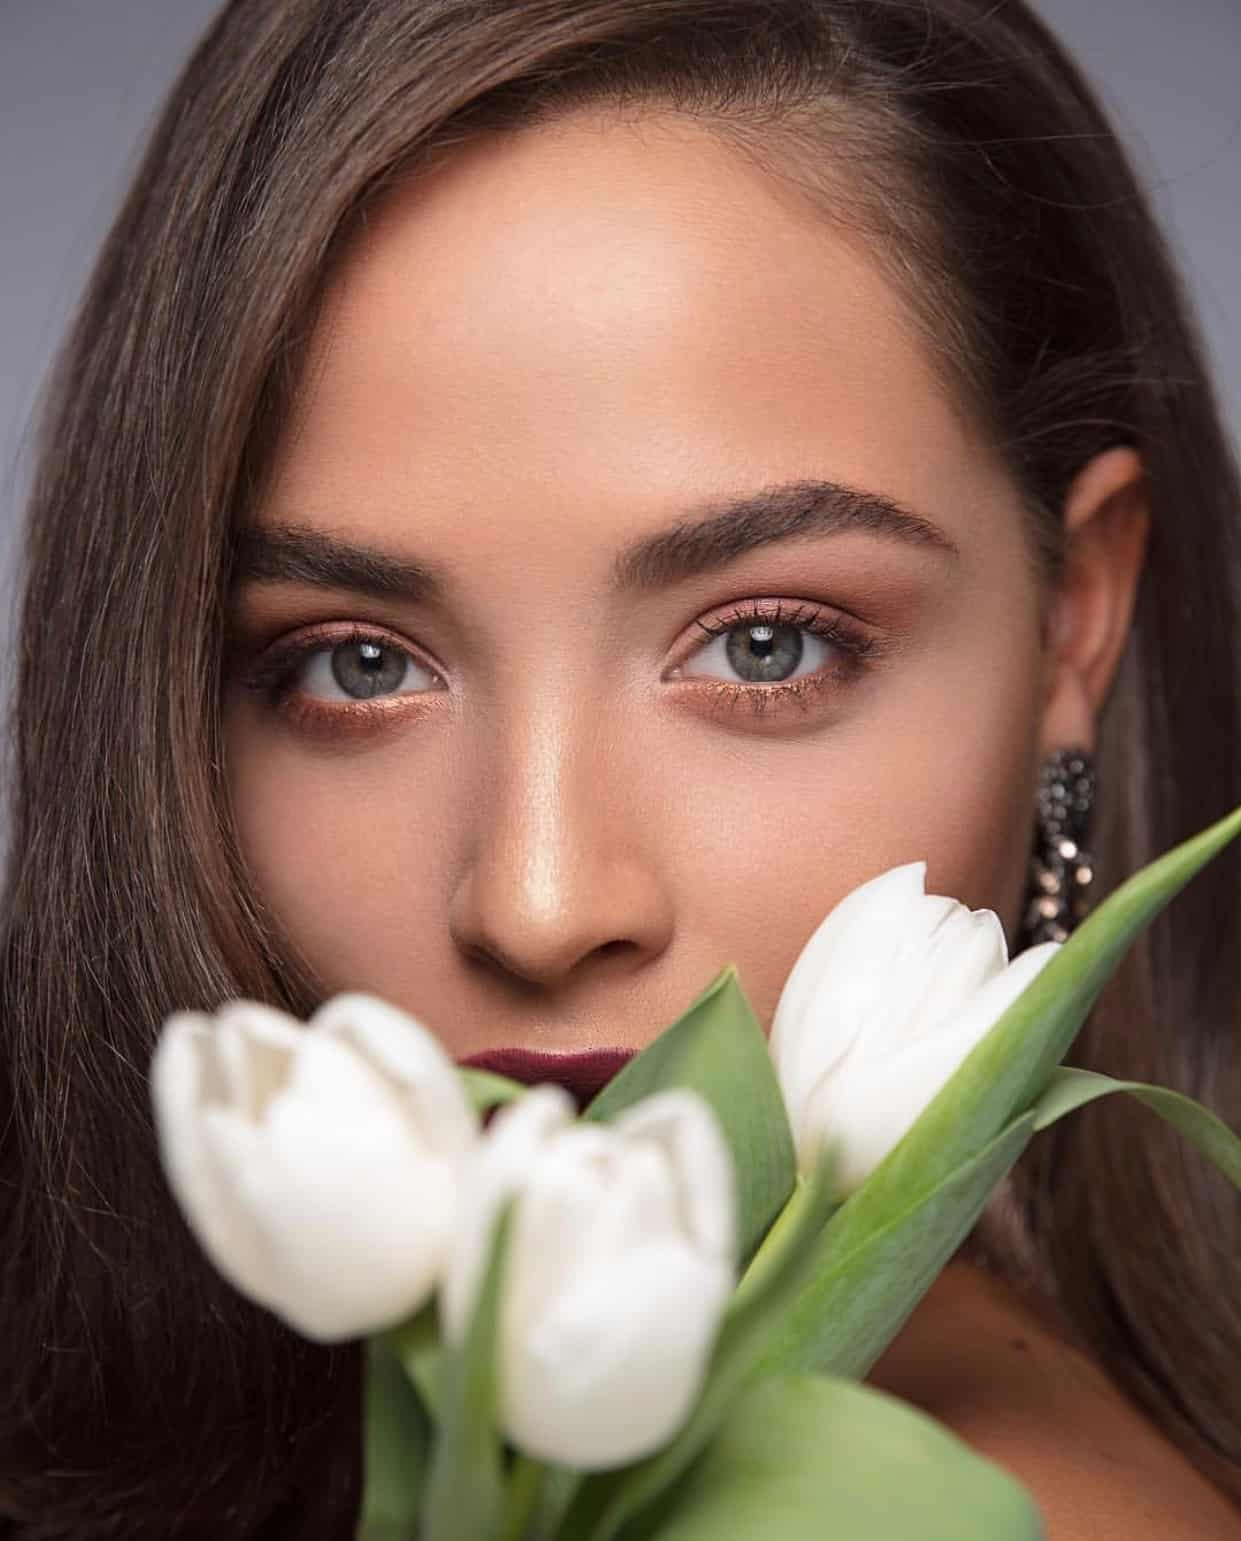 portrait of woman with natural makeup and white tulips